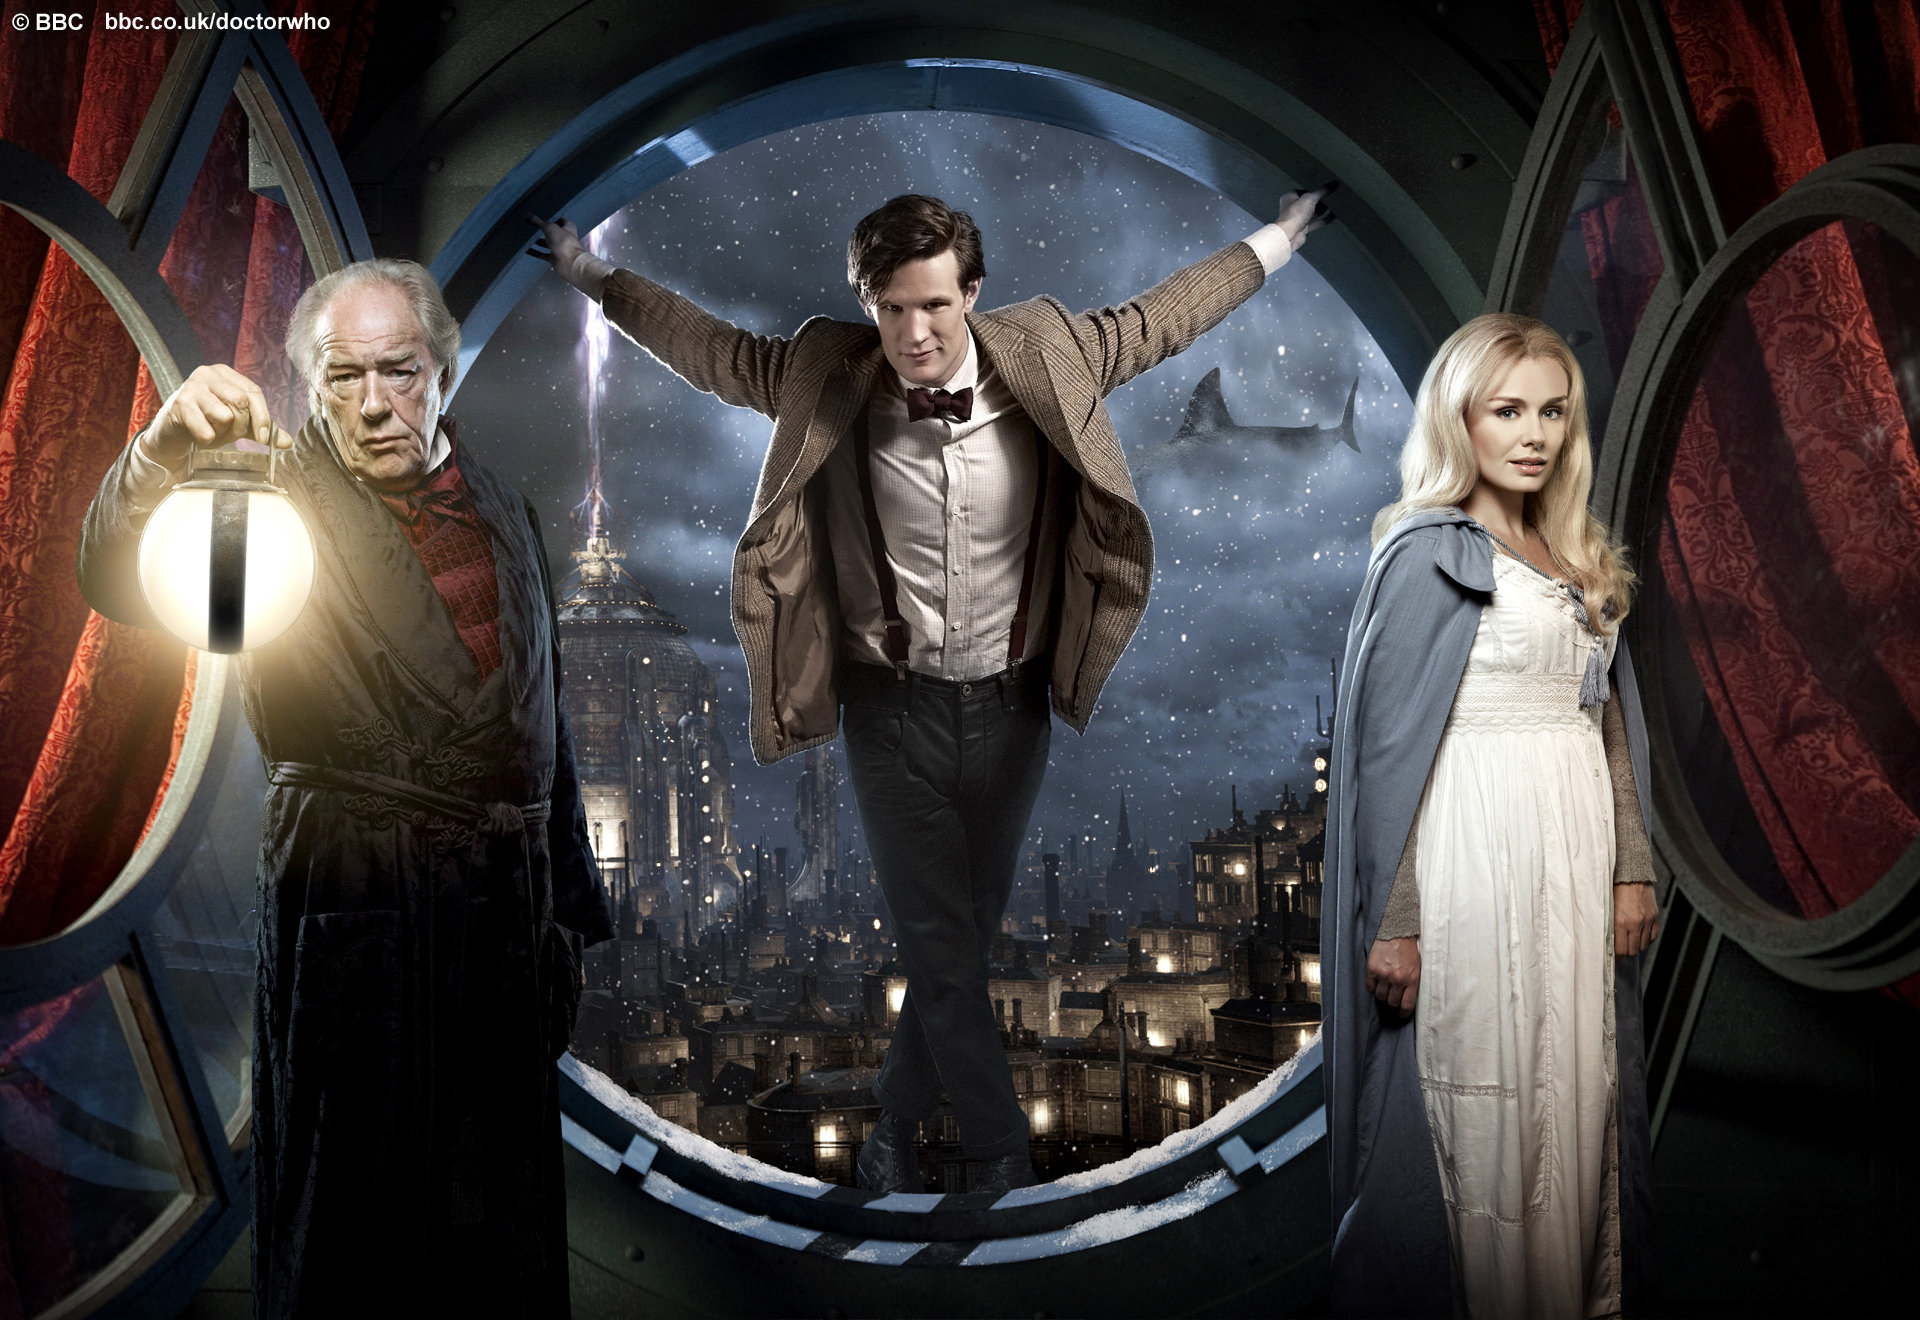 http://static.bbc.co.uk/images/ic/qe/crop/946x532/doctorwho/episodes/d11/s01/e14/wallpapers/d11s01e14_wallpaper_01.jpg